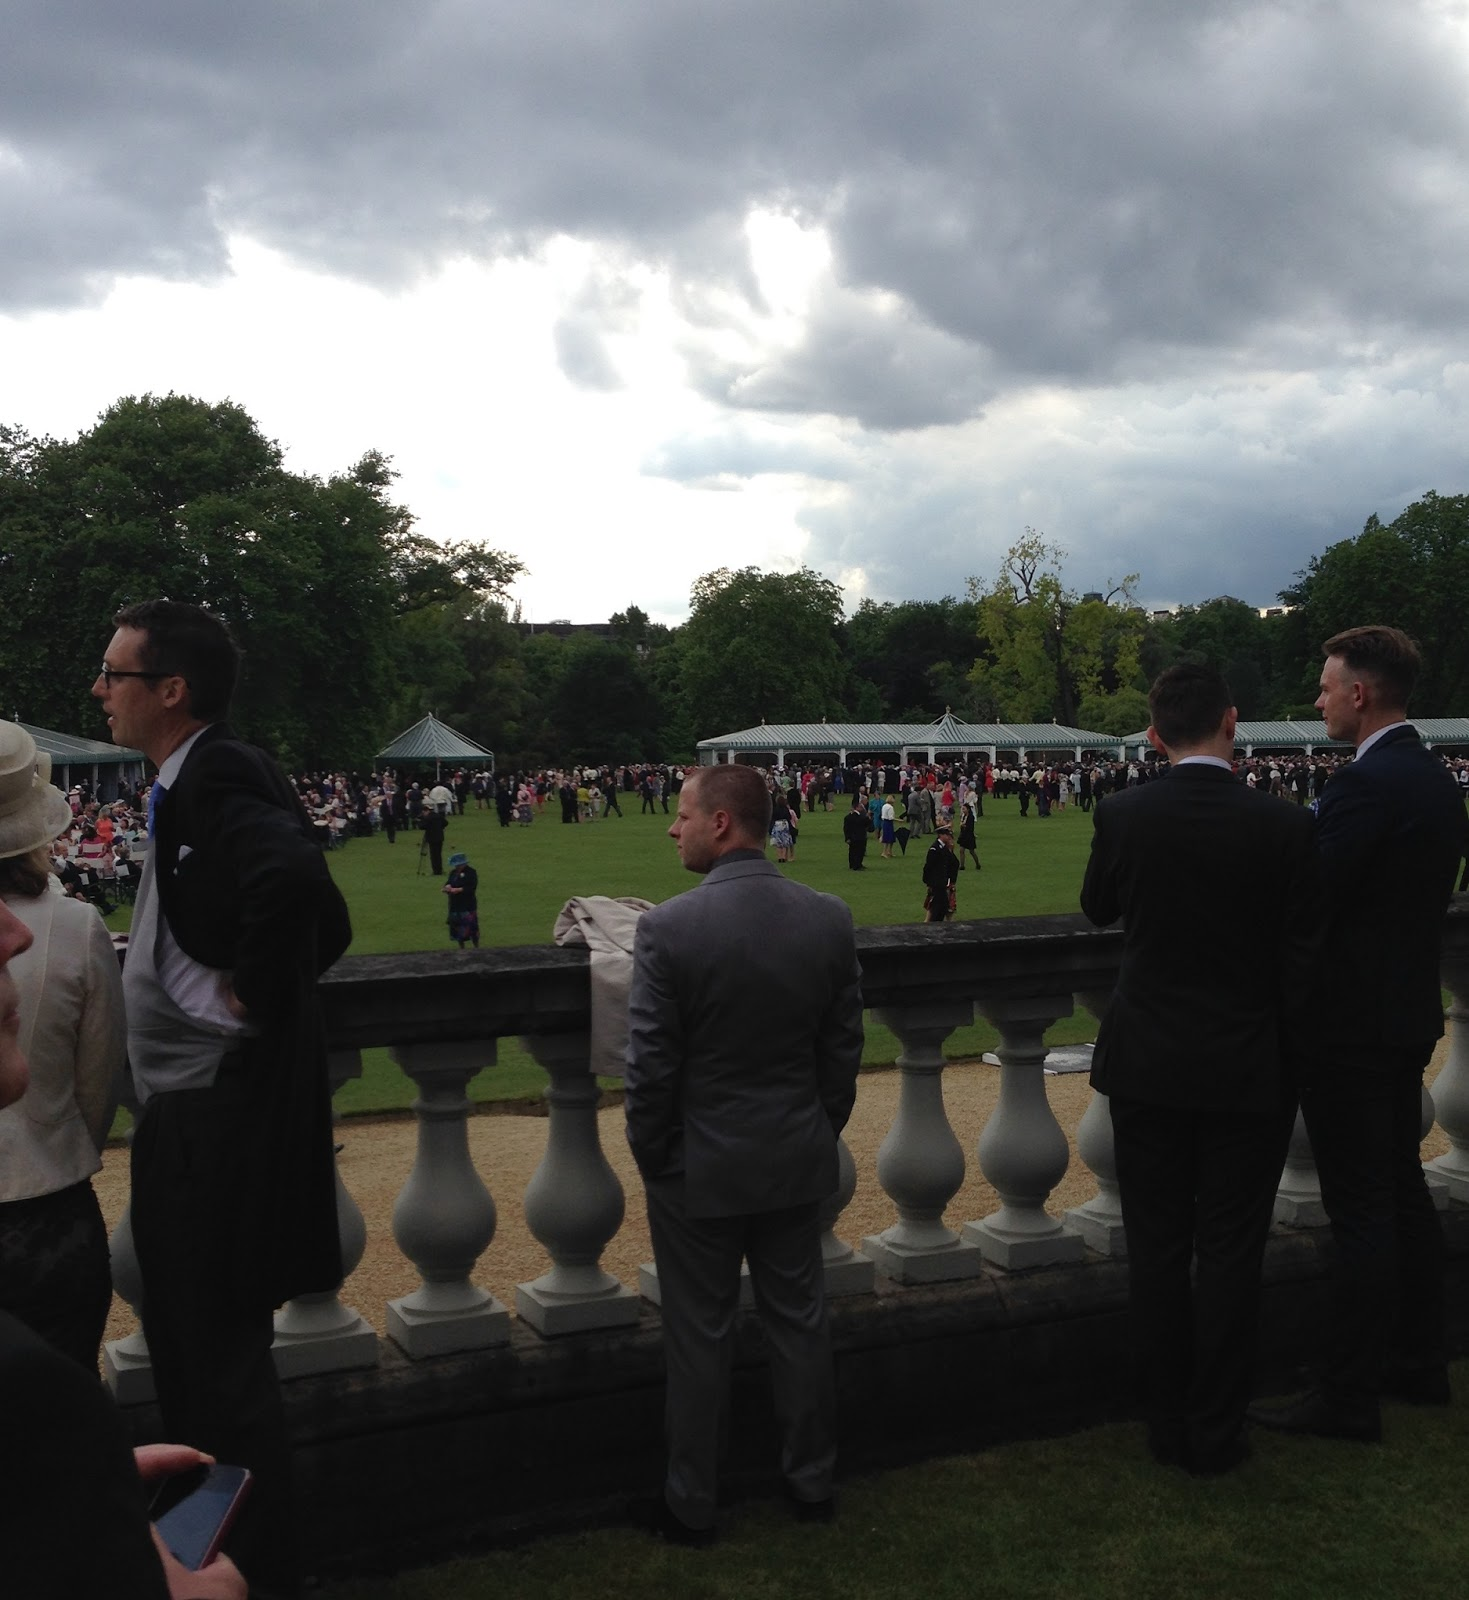 Storm clouds over Buckingham Palace